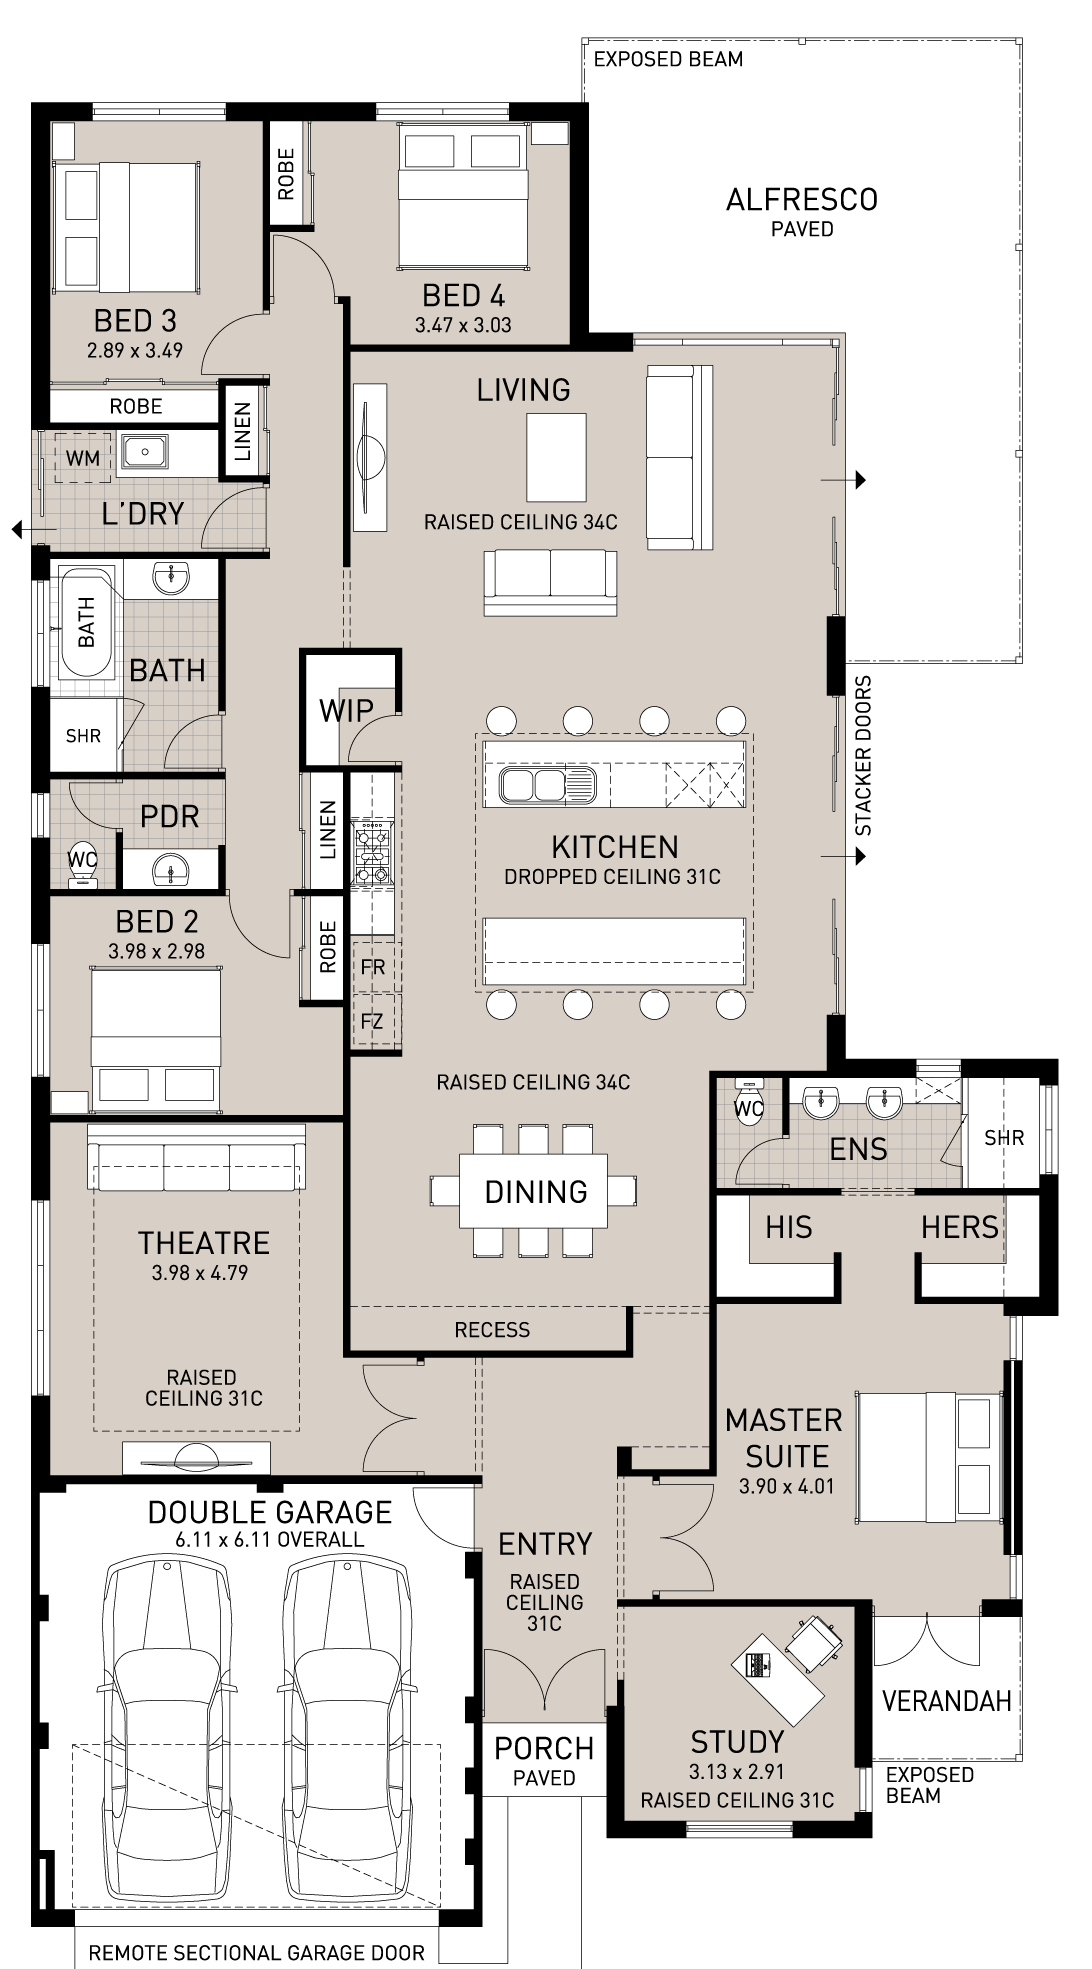 How Much Is My House Worth House Plans Floor Plan Design Dream House Plans